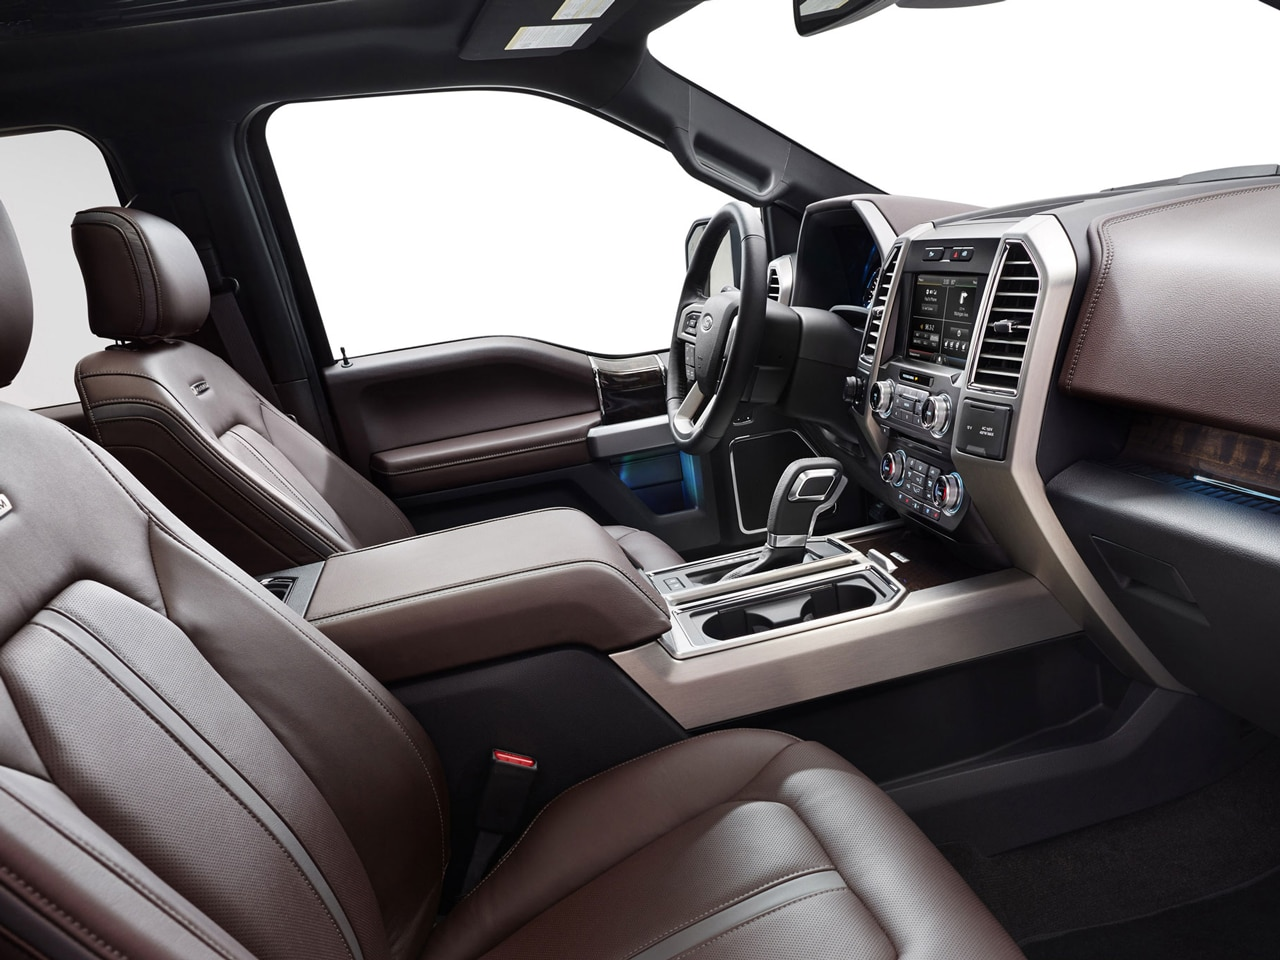 Research The 2015 Ford F-150 in Tulsa